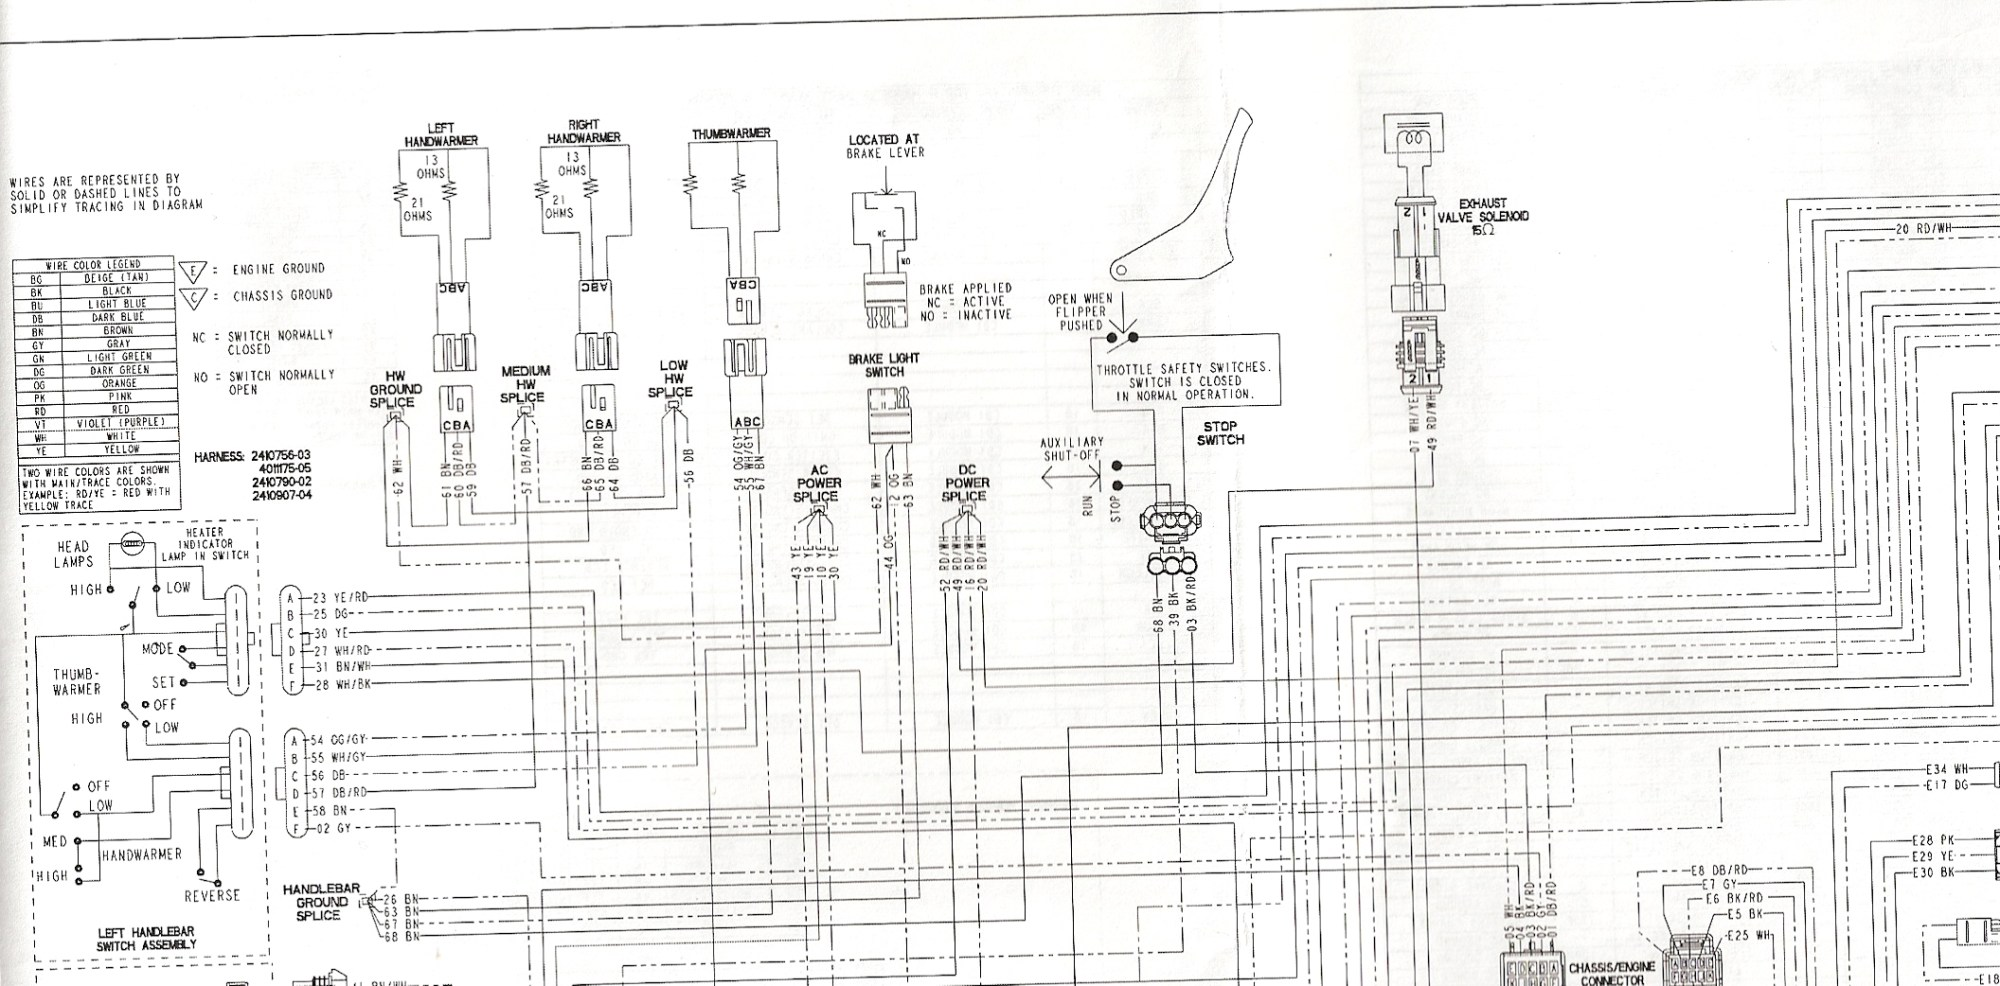 hight resolution of polaris 07 iq 600 wiring schematic 07 polaris iq 700 2009 polaris dragon rmk 800 2005 polaris rmk 800